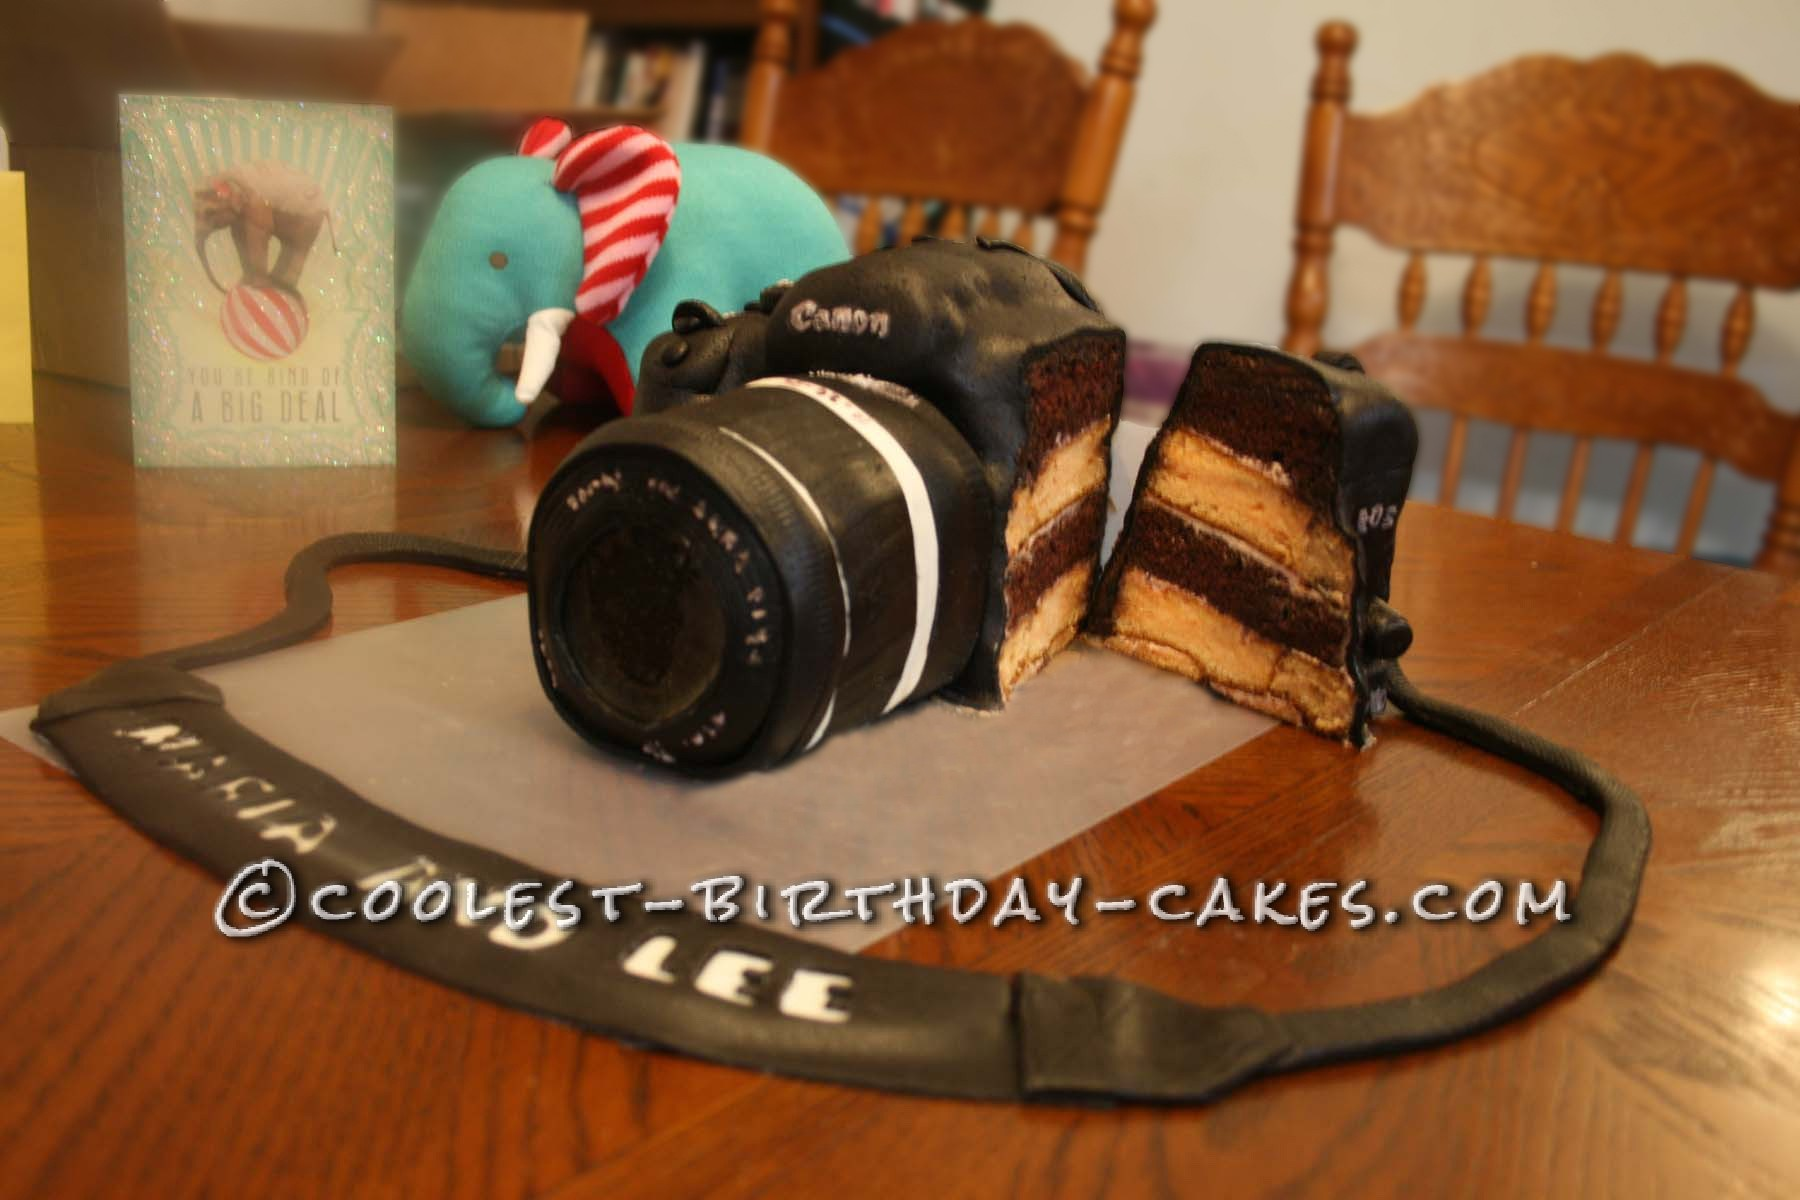 Camera Cake sliced open